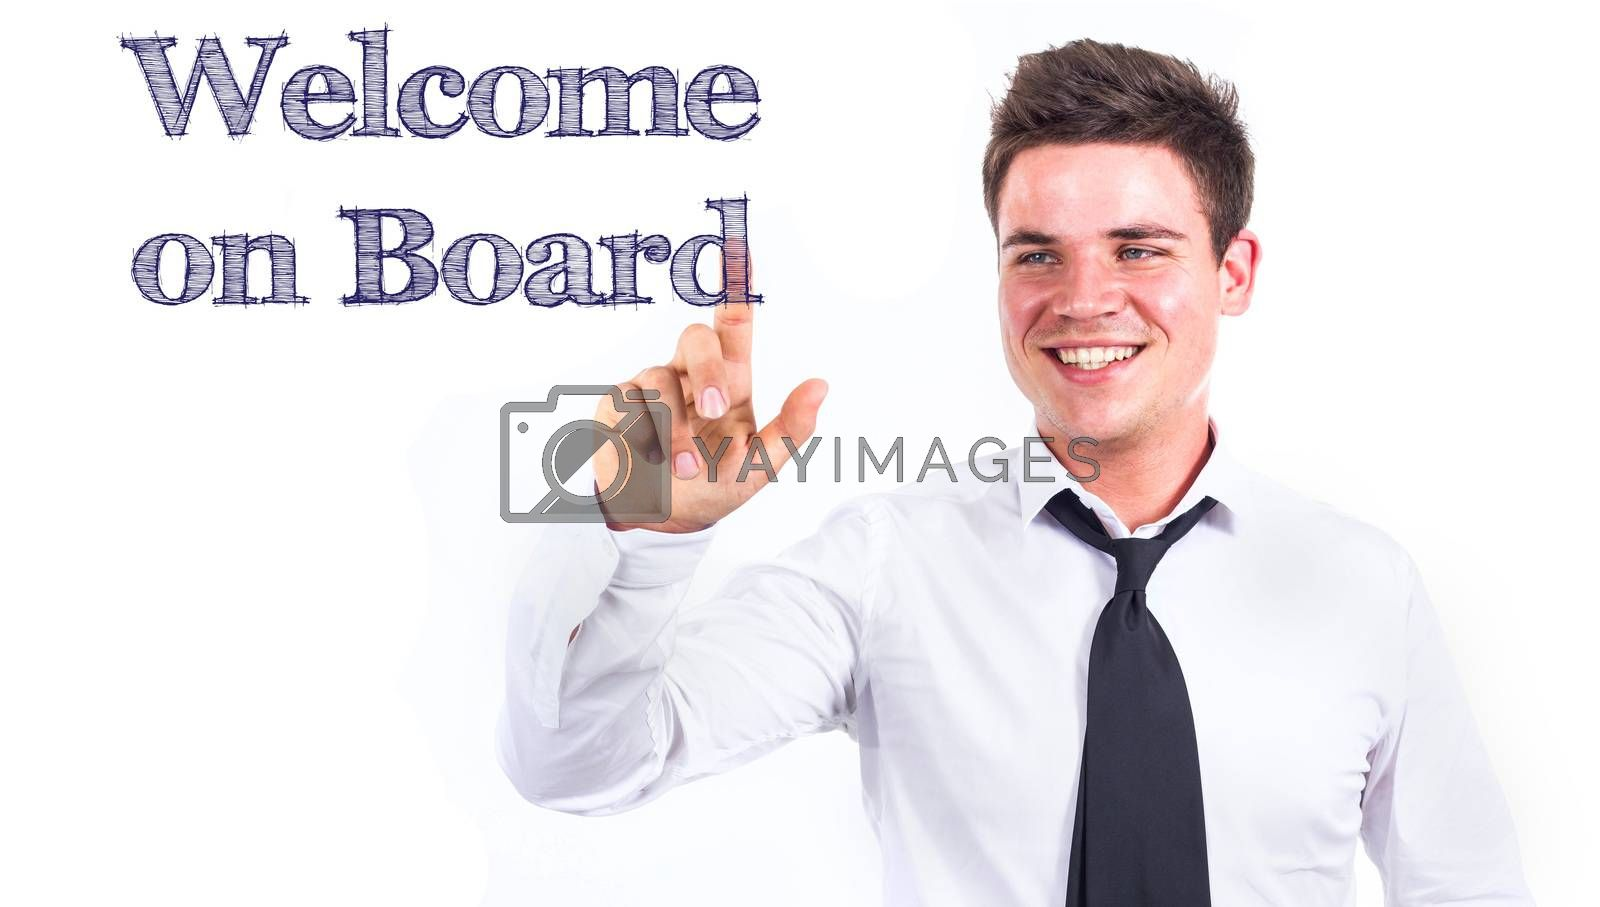 Welcome on Board - Young smiling businessman touching text - horizontal image